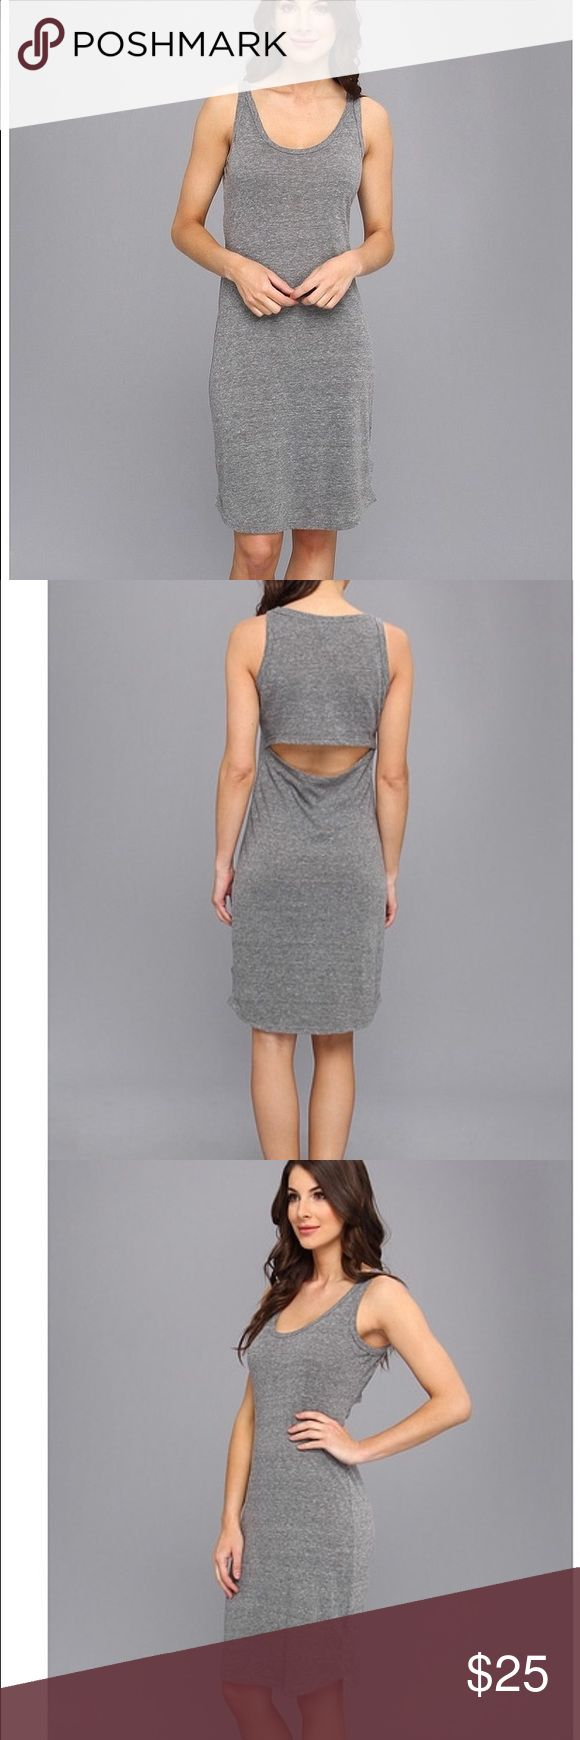 C&C California open back tank dress Grey bodycon tank dress in a super soft cotton. Unique open back, perfect for hot summer weekends and days ah the beach. C&C California Dresses Midi